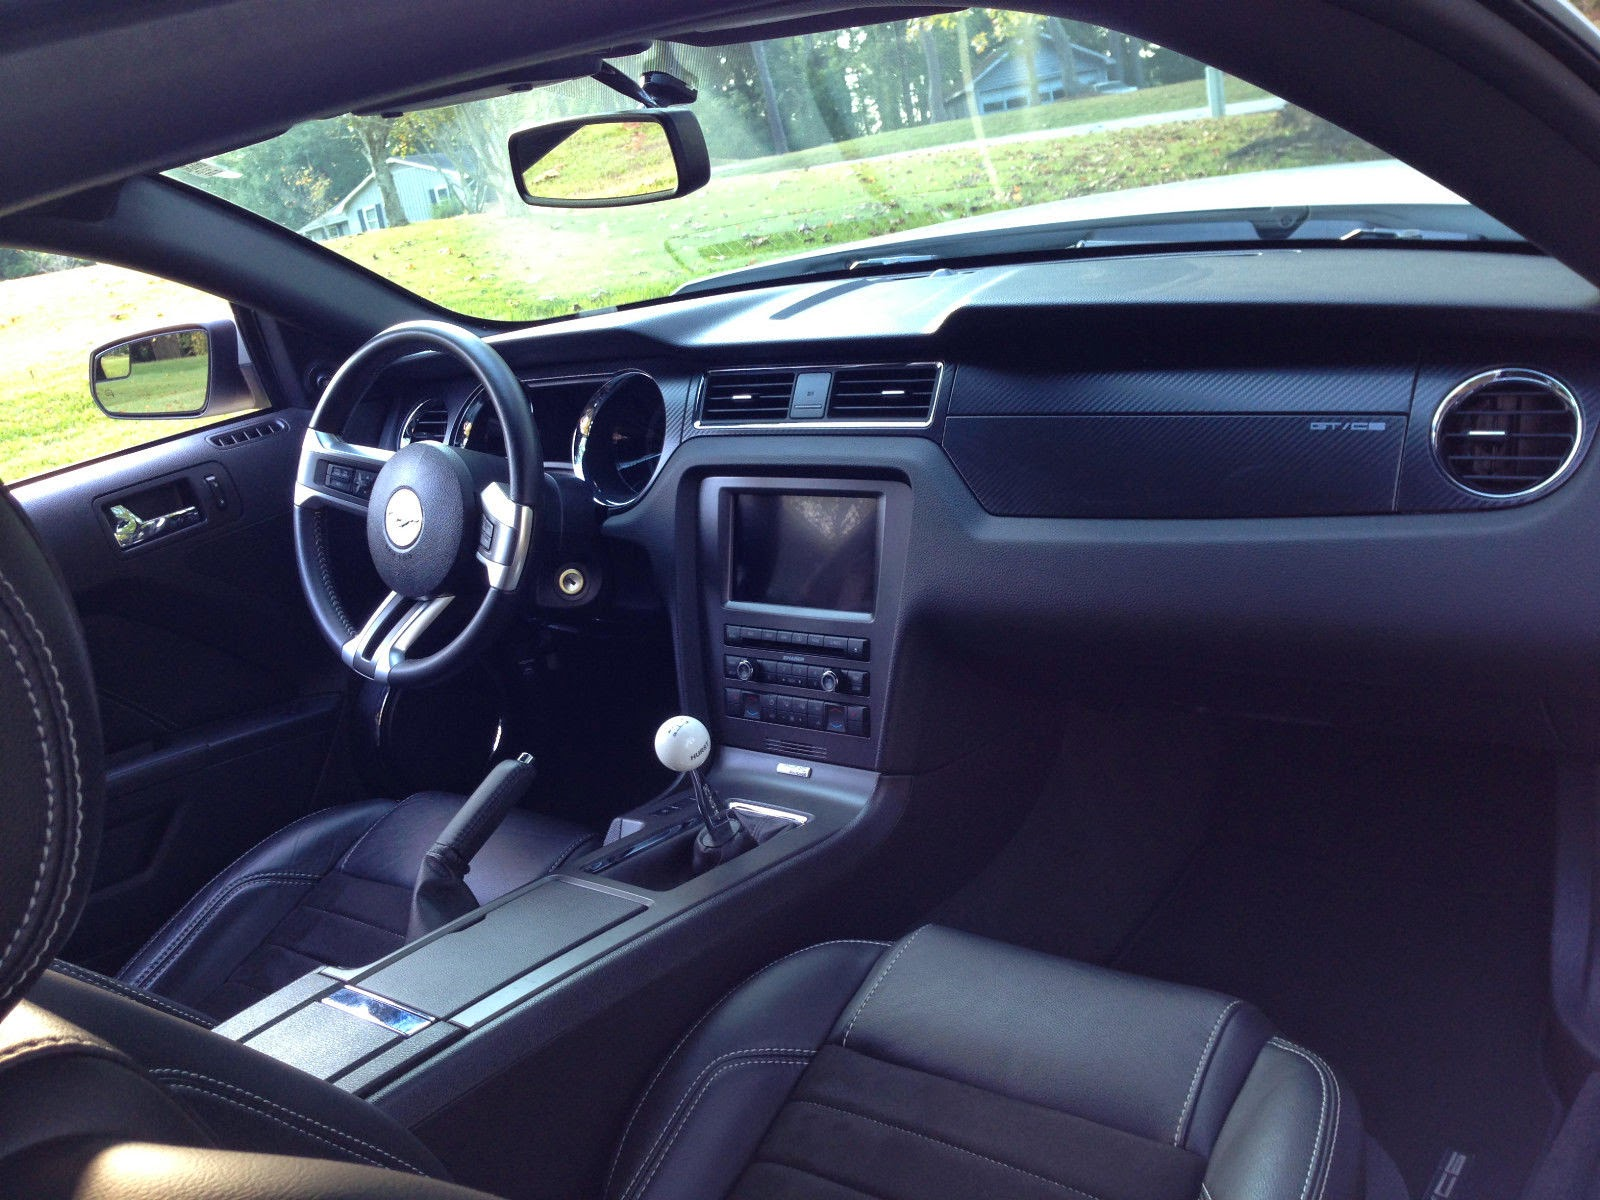 interior pictures of 2014 mustang california autos post. Black Bedroom Furniture Sets. Home Design Ideas